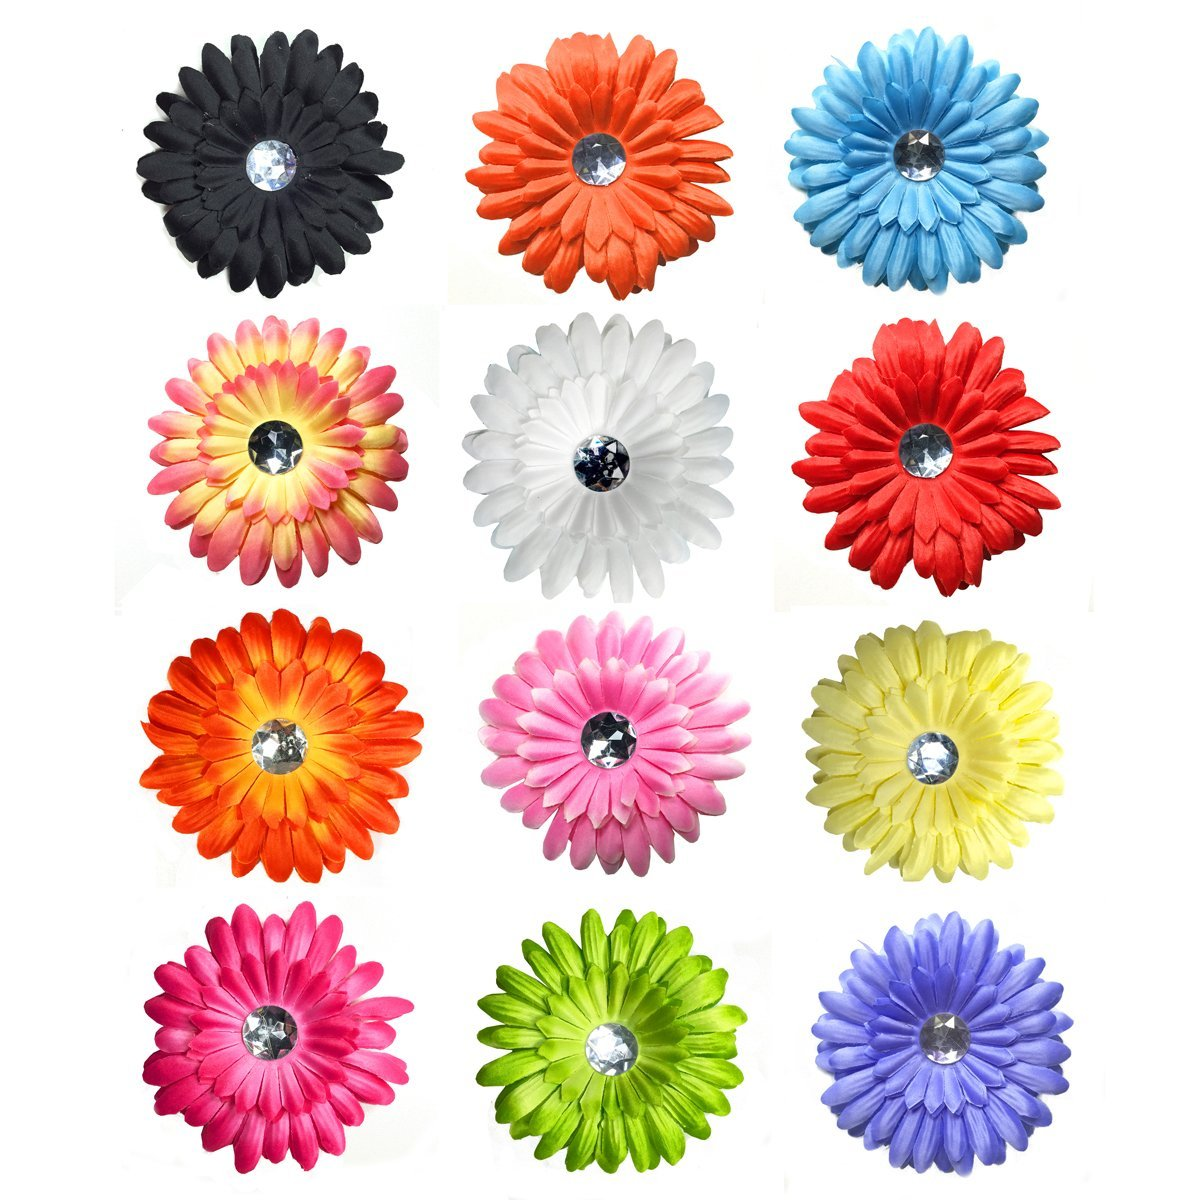 Cheap Daisy Flower Brooch Find Daisy Flower Brooch Deals On Line At